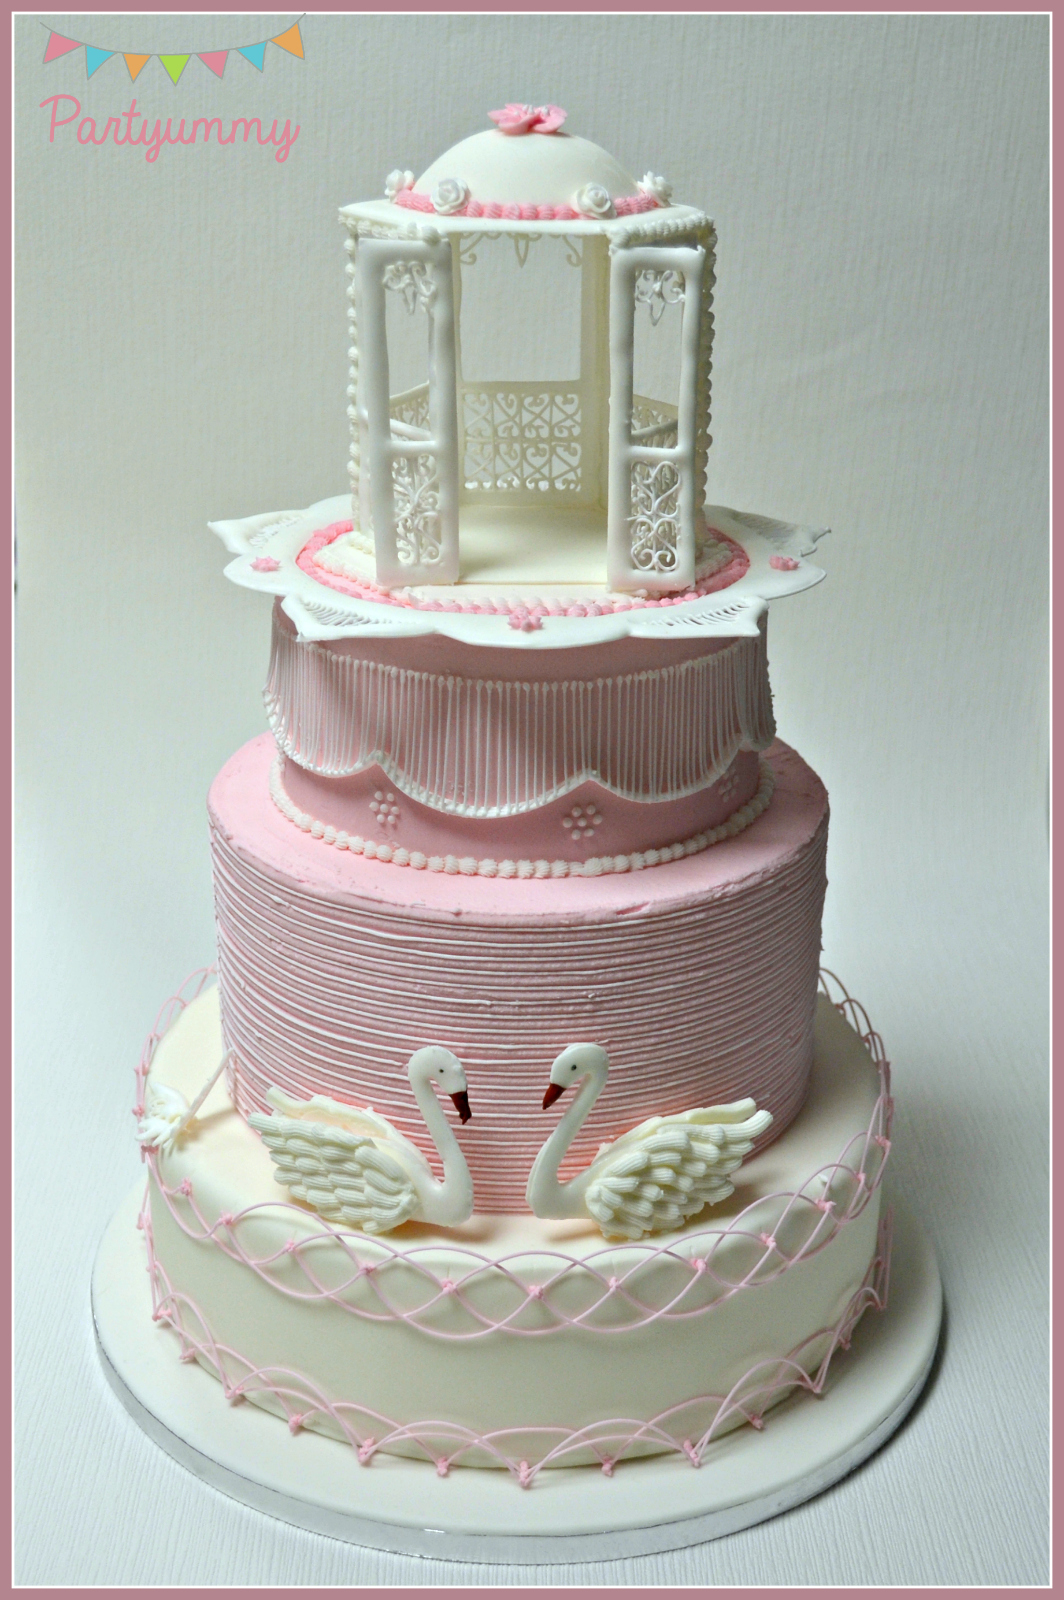 piece-montee-gateau-glacage-royal-icing-wedding-cake